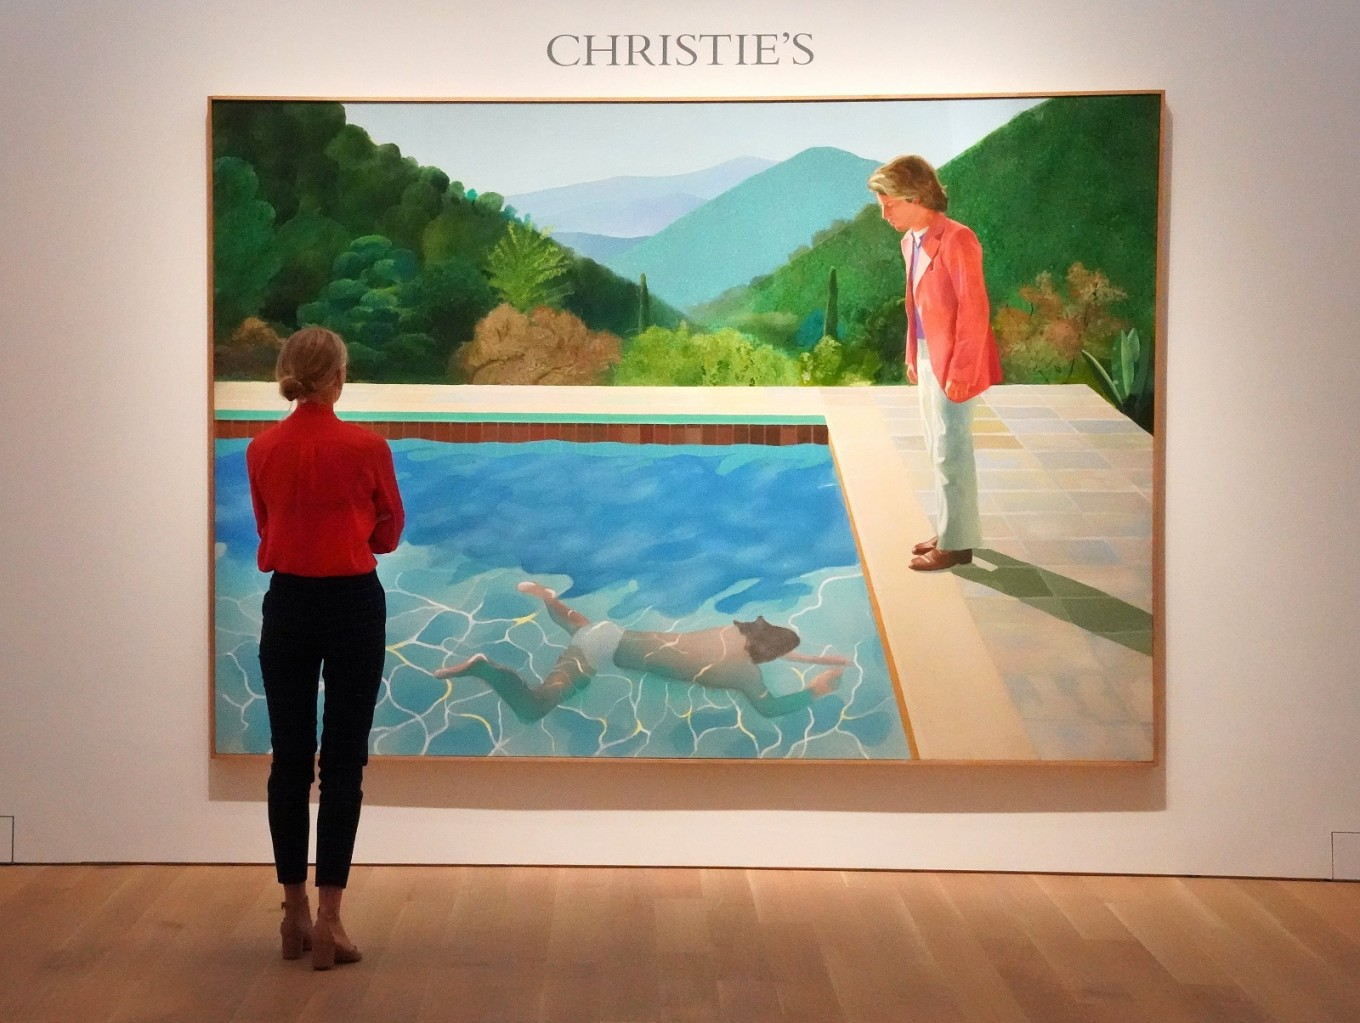 Christie's tops Sotheby's in monster week for auction sales